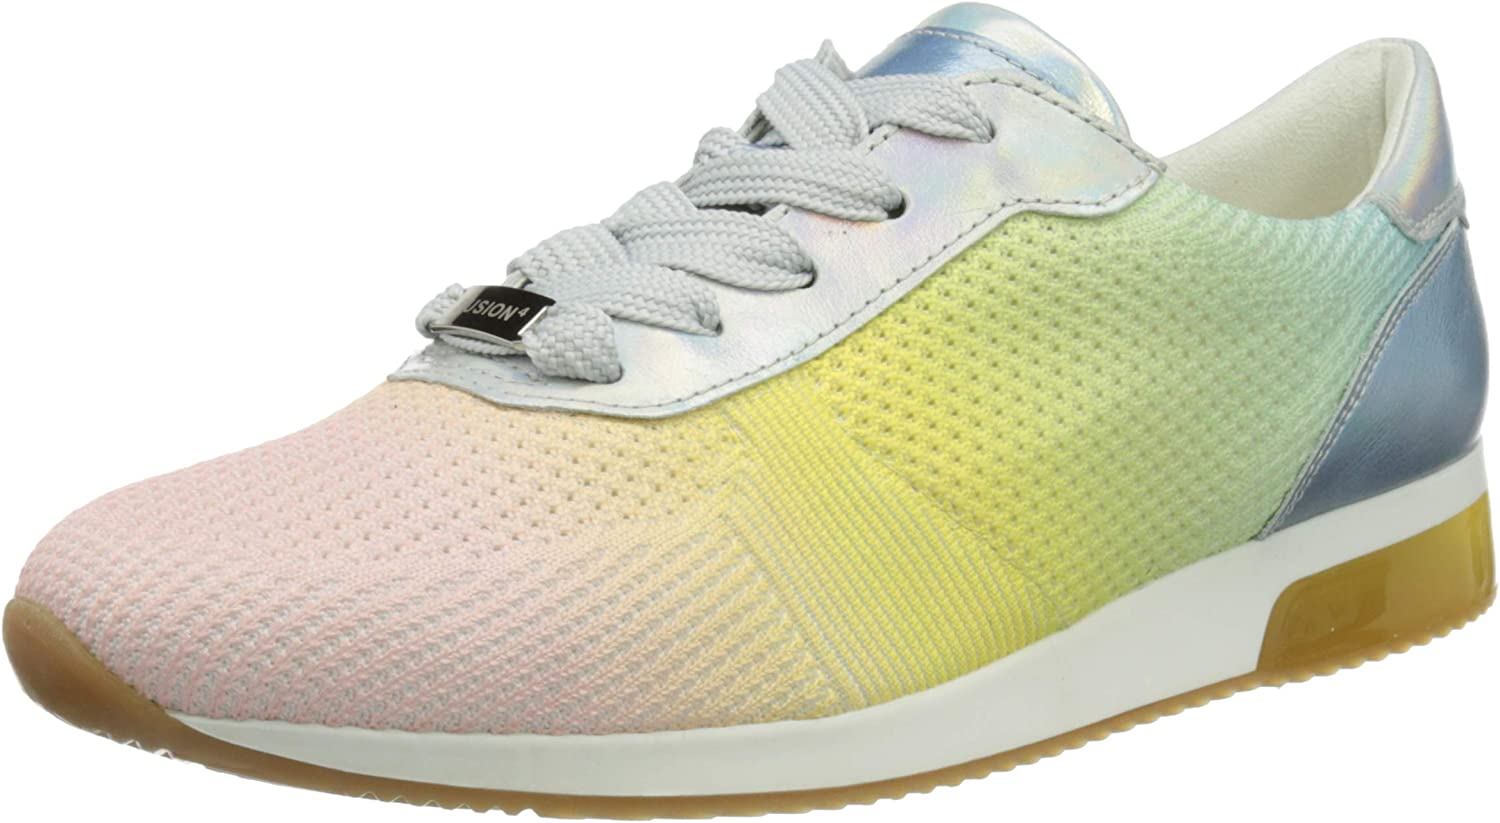 ARA Women's Max 69% OFF Max 77% OFF Leigh Sneaker Pastell-Multi 10 US